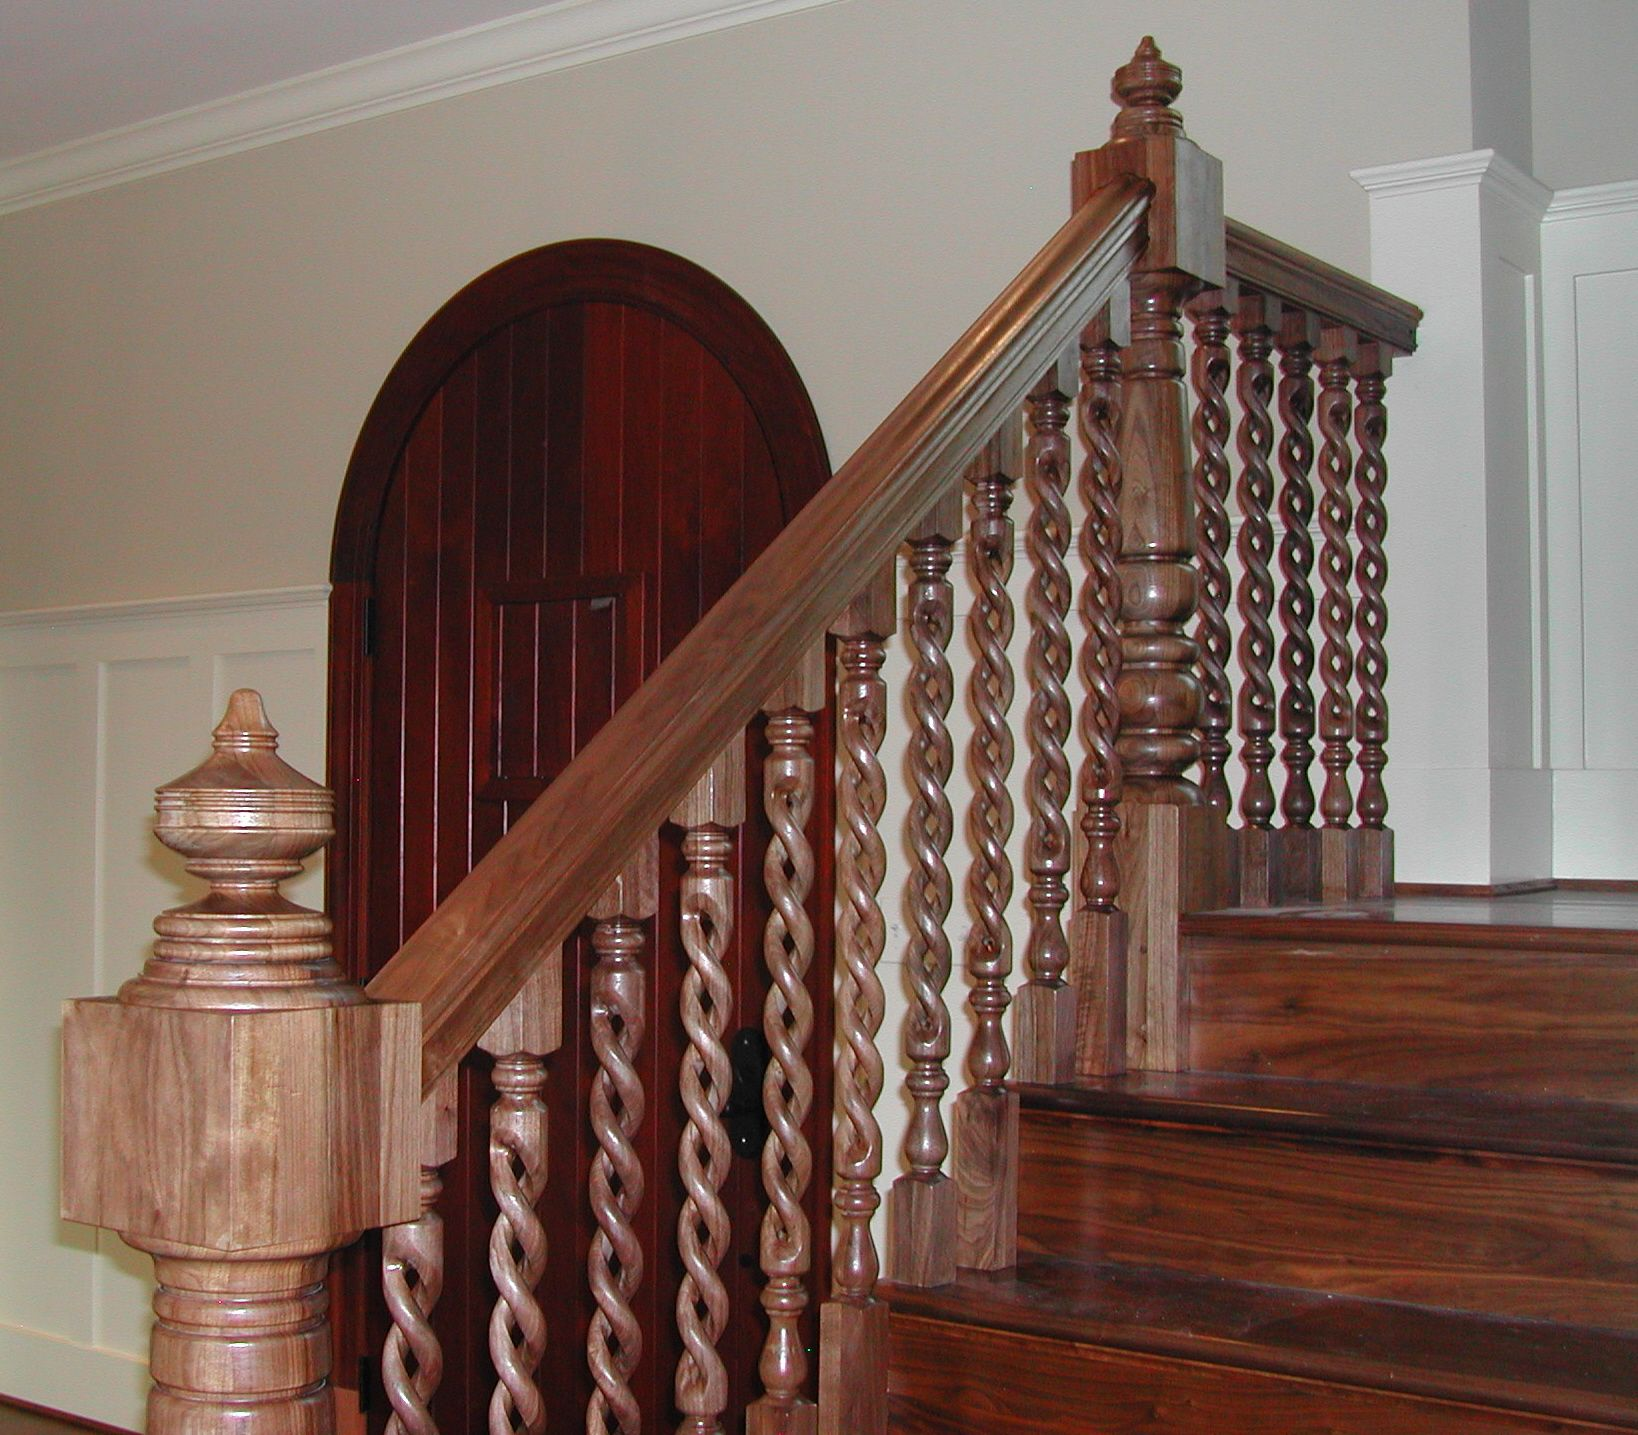 Beautiful Interior Staircase Ideas And Newel Post Designs: Railings, Newel Posts And Custom Rope Twist Balusters